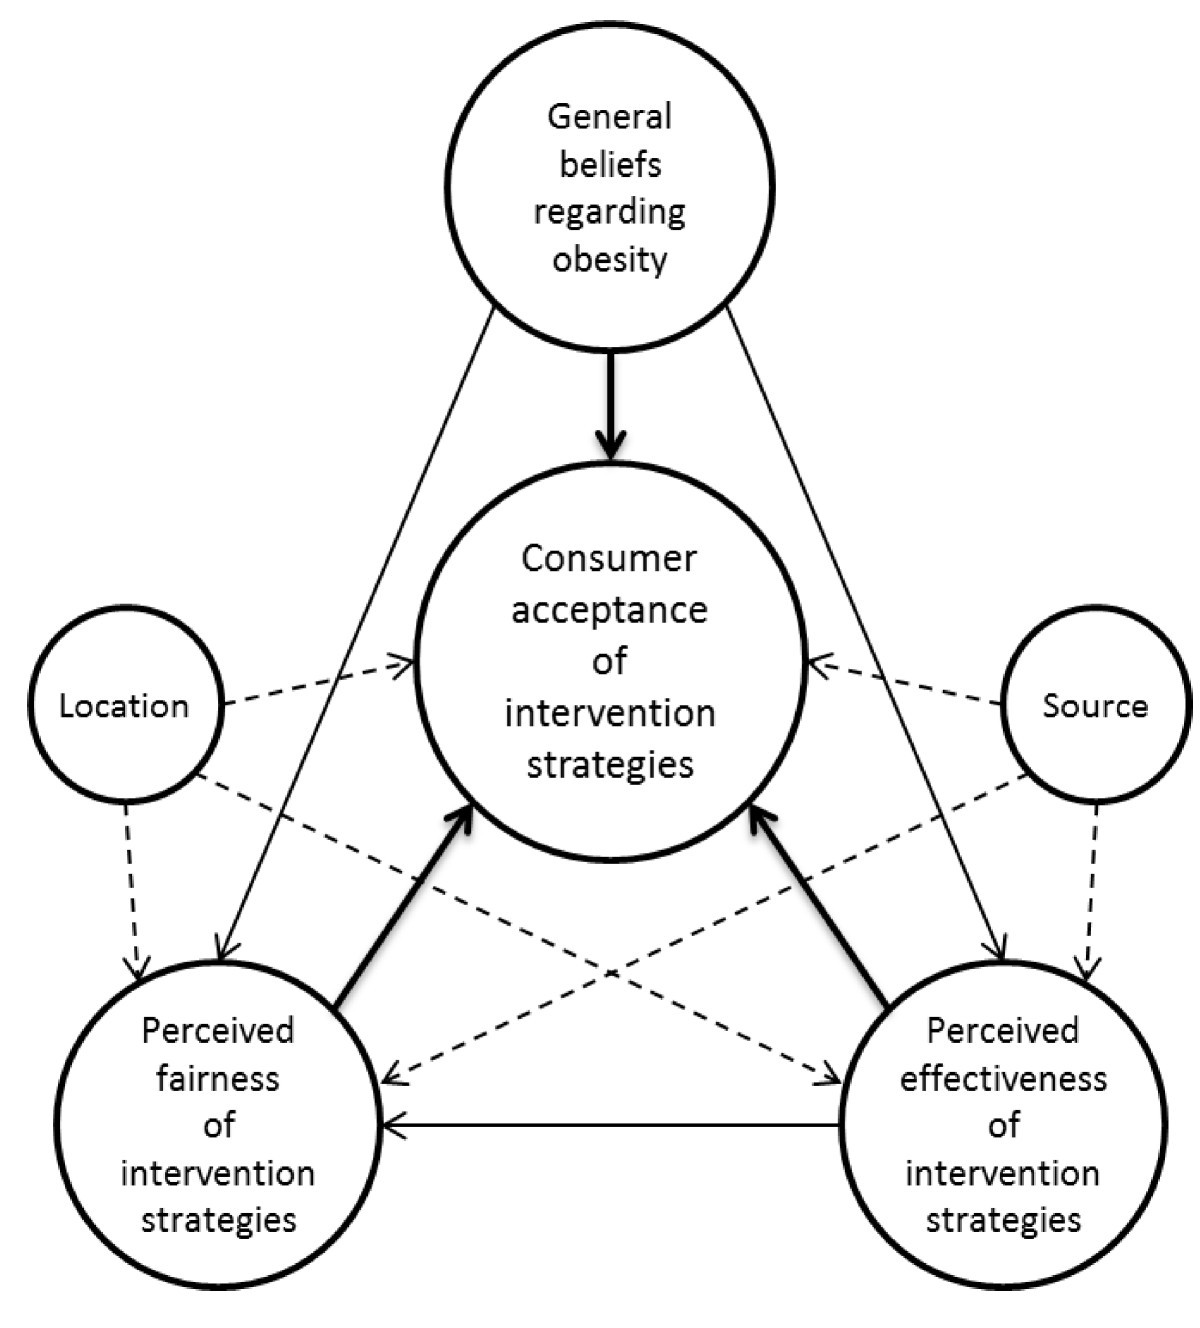 understanding consumer acceptance of intervention strategies for Types of Perception Errors figure 1